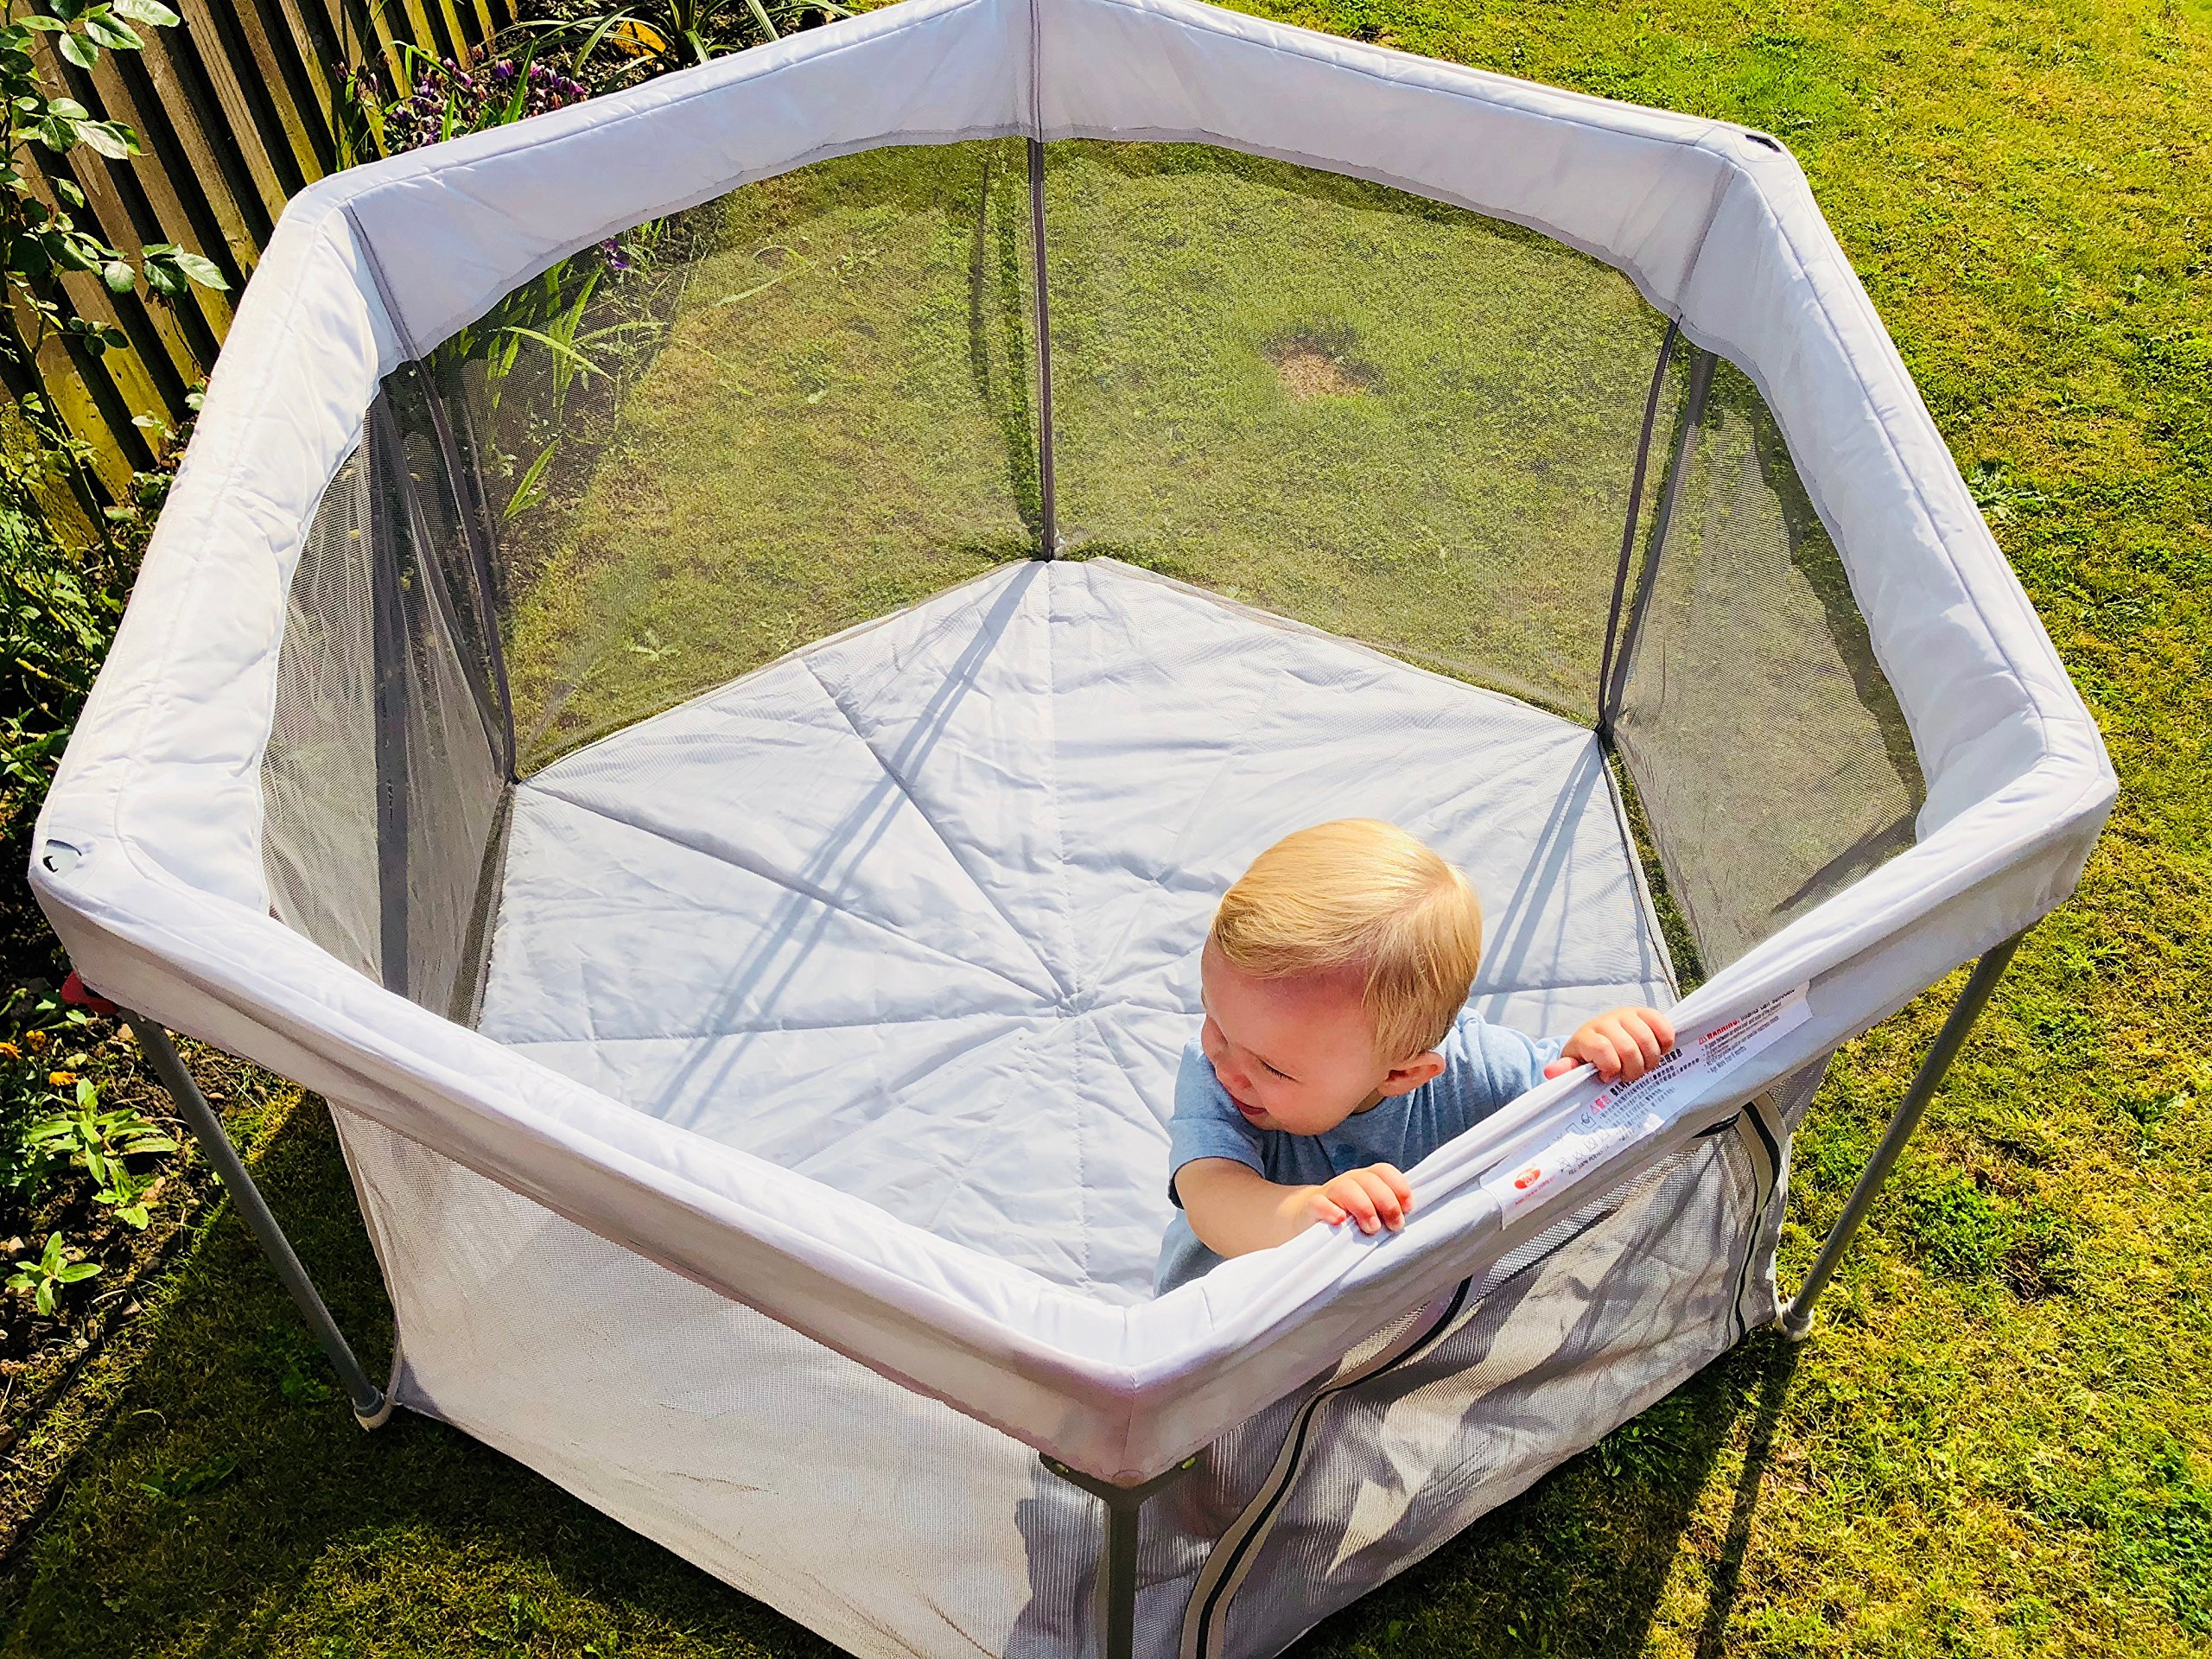 All Stars Joy Baby Playpen, Foldable & Compact, Fitted Floor Mat, Strong and Durable Play Pen ALL STAR New 2018 Foldable Playpen, sets up and folds down in seconds, fitting comfortably in a carry bag for easy transportation Safety First - New Patented Folding mechanism, eliminates steel cross sections as seen on older portable play pen versions Padded nylon canvas weather resistant floor mat for use indoors and outdoors, easy to clean. Simply wipe down with a damp cloth. Sides are equipped with ventilating mesh walls for easy visibility, a zip-opening panel allows for easy access 3